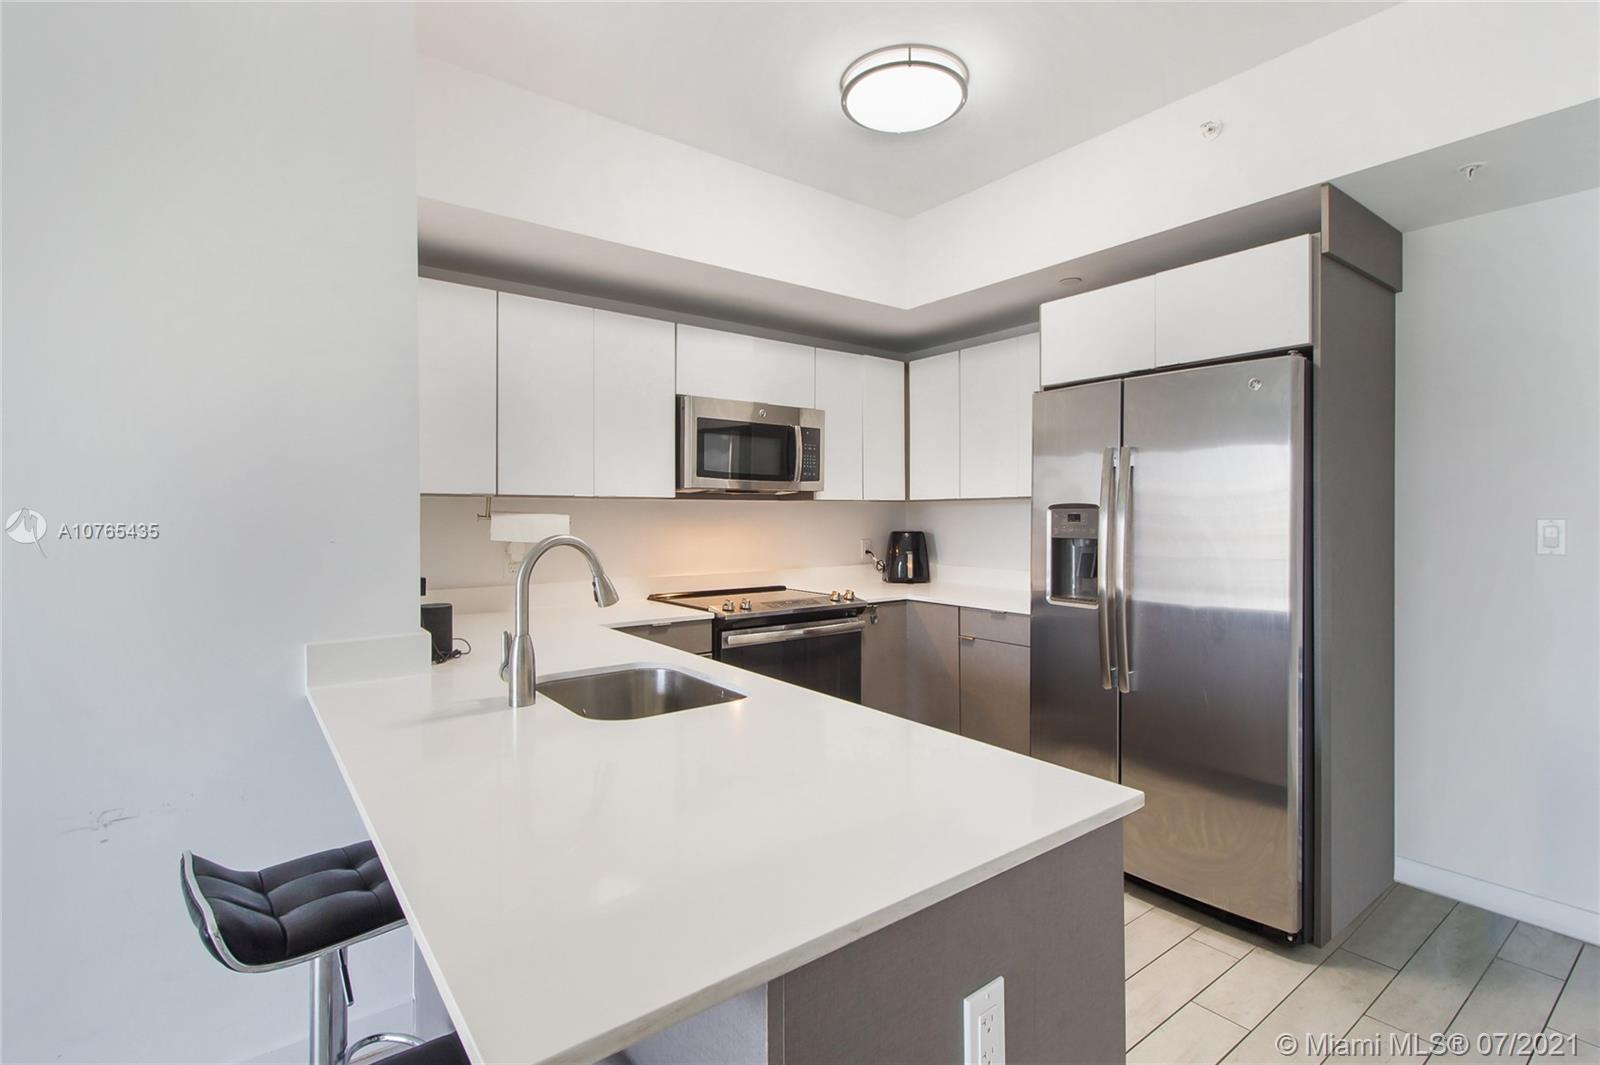 **GREAT INVESTOR OPPORTUNITY**Unit is rented for $1,950 a month until FEB 2022! Low Maintenance Fee! Boutique style building minutes from Downtown, Brickell, Midtown, Design District and much more! Beautiful 2/2 unit in the popular Edgewater neighborhood.  Unit features porcelain wood style floors, floor to ceiling impact windows and sliding doors and 9 foot ceilings.  Residents of 26 Edgewater can enjoy amenities such as rooftop pool, lounge and sun deck, fitness center and party room!